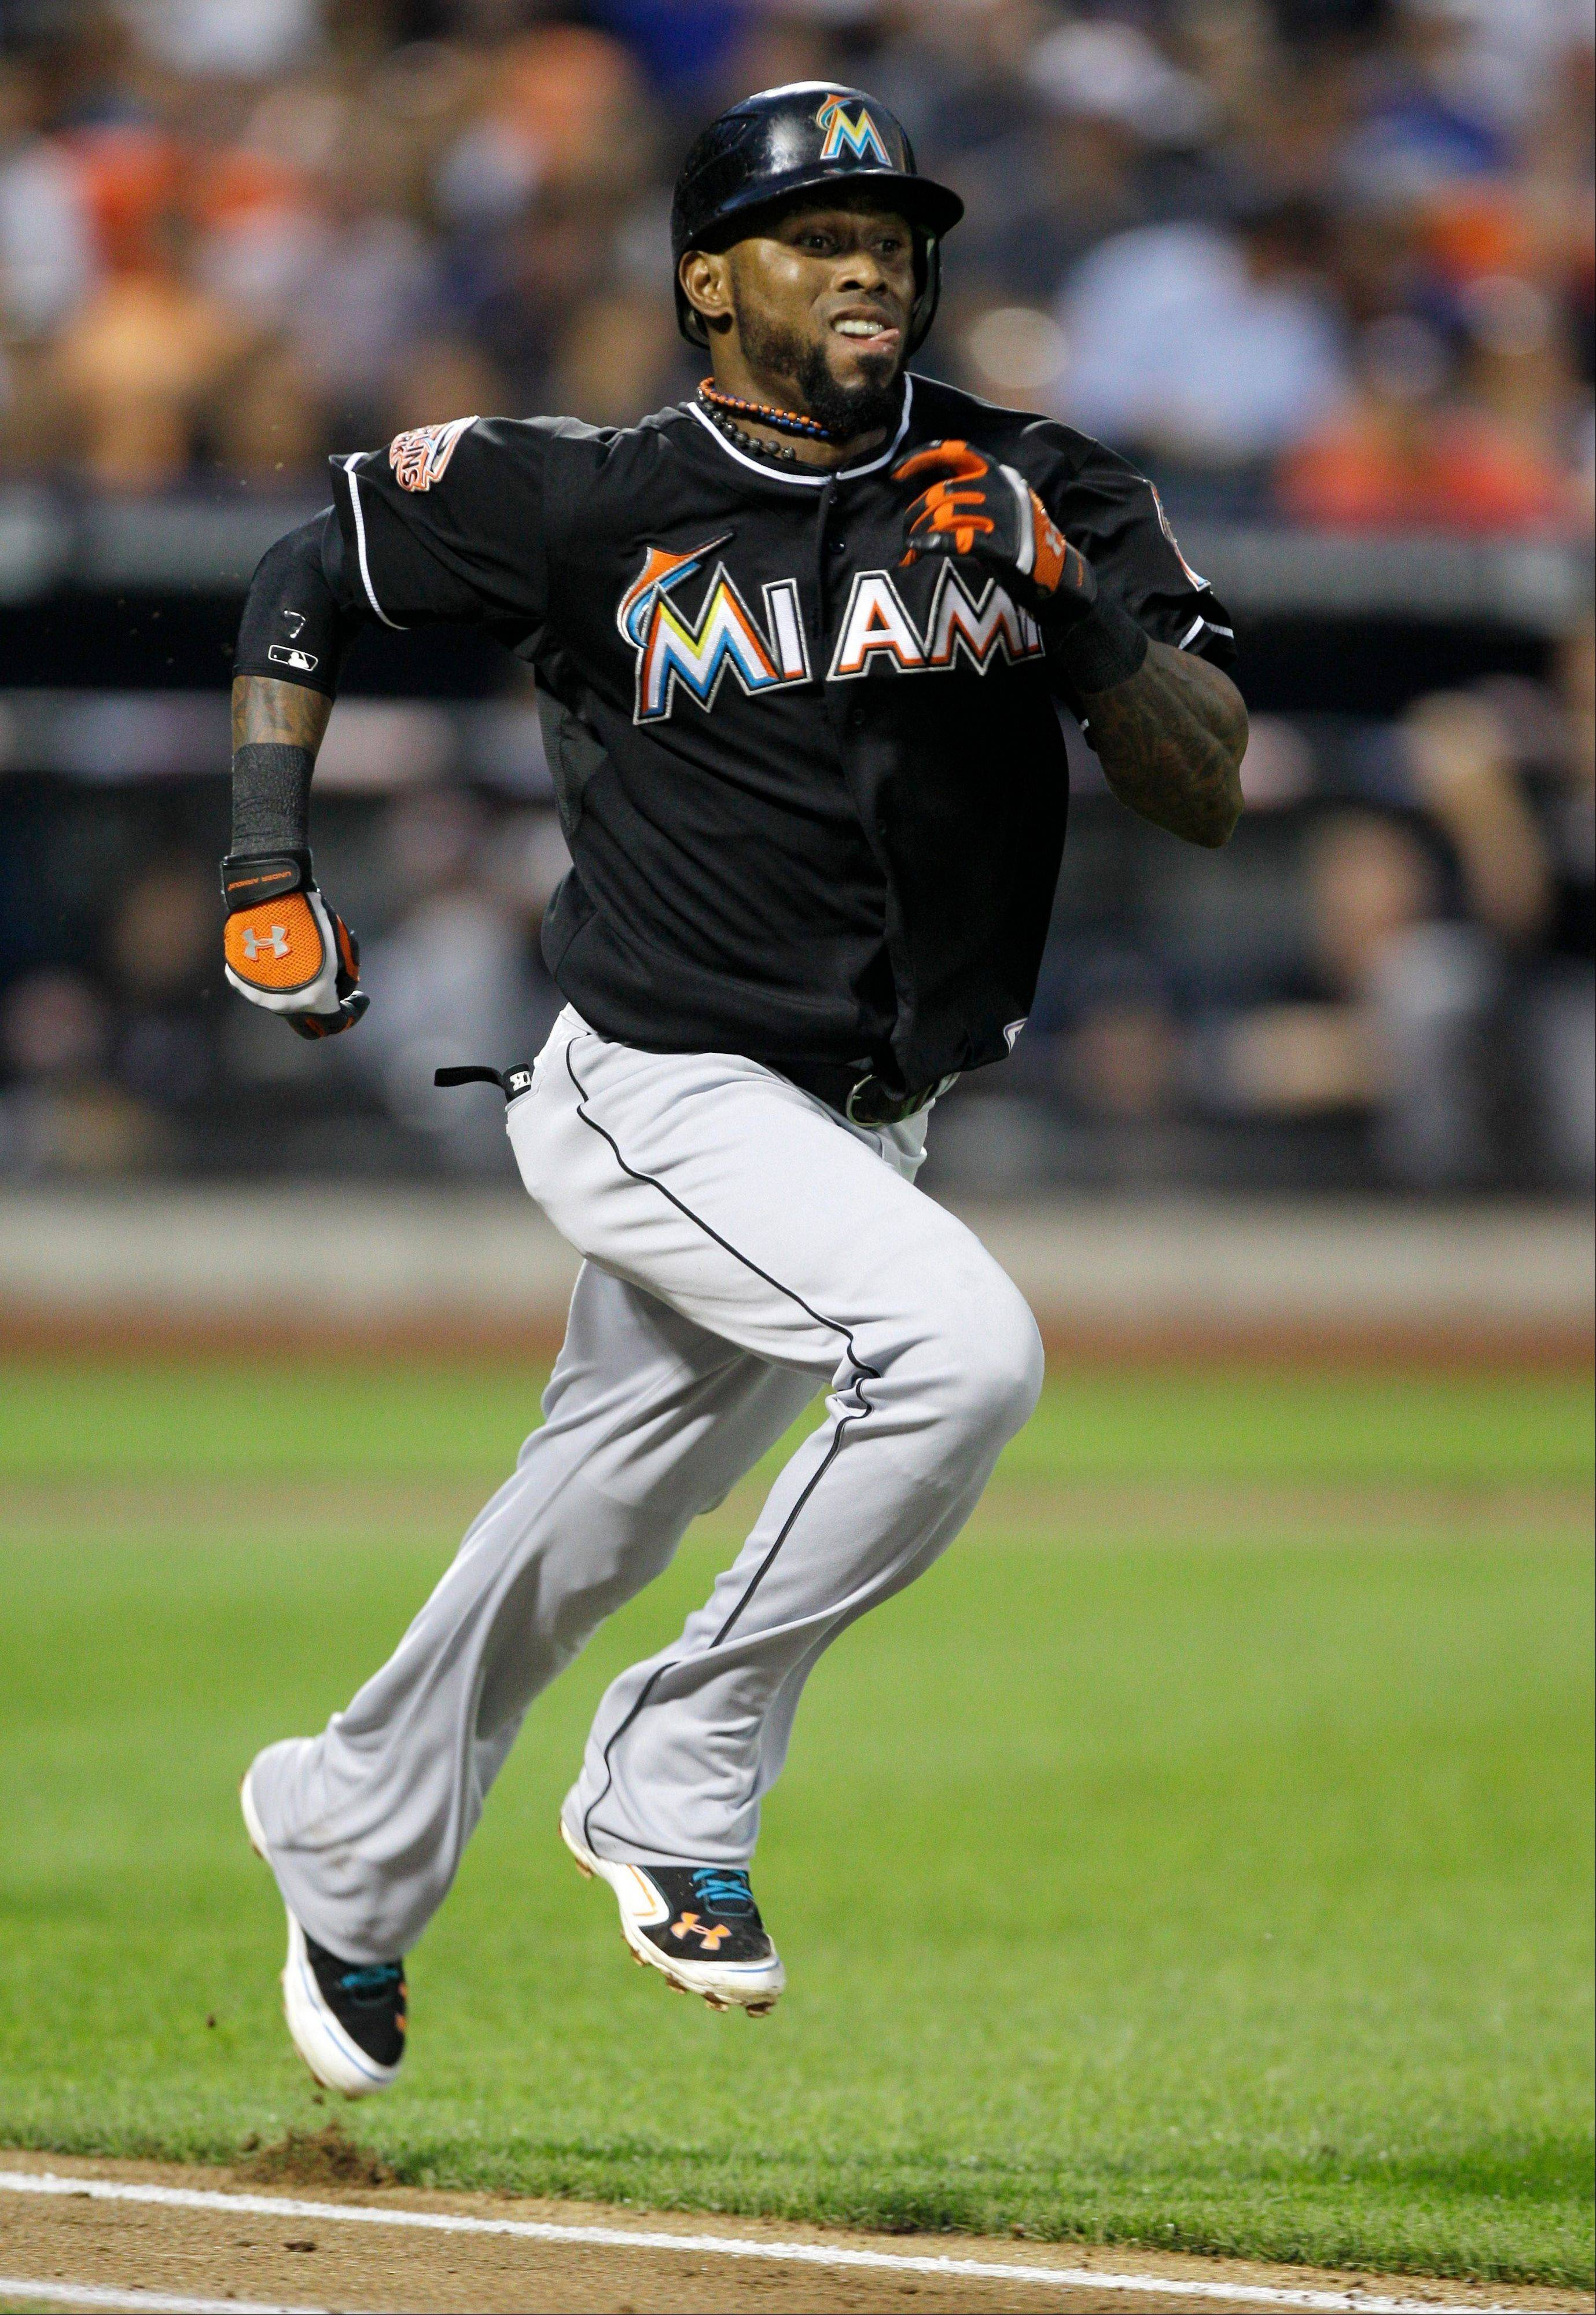 The Marlins' Jose Reyes runs out a fourth-inning infield single Mets starting pitcher Jonathon Niese, extending his hitting streak to 25 games, Tuesday in New York.